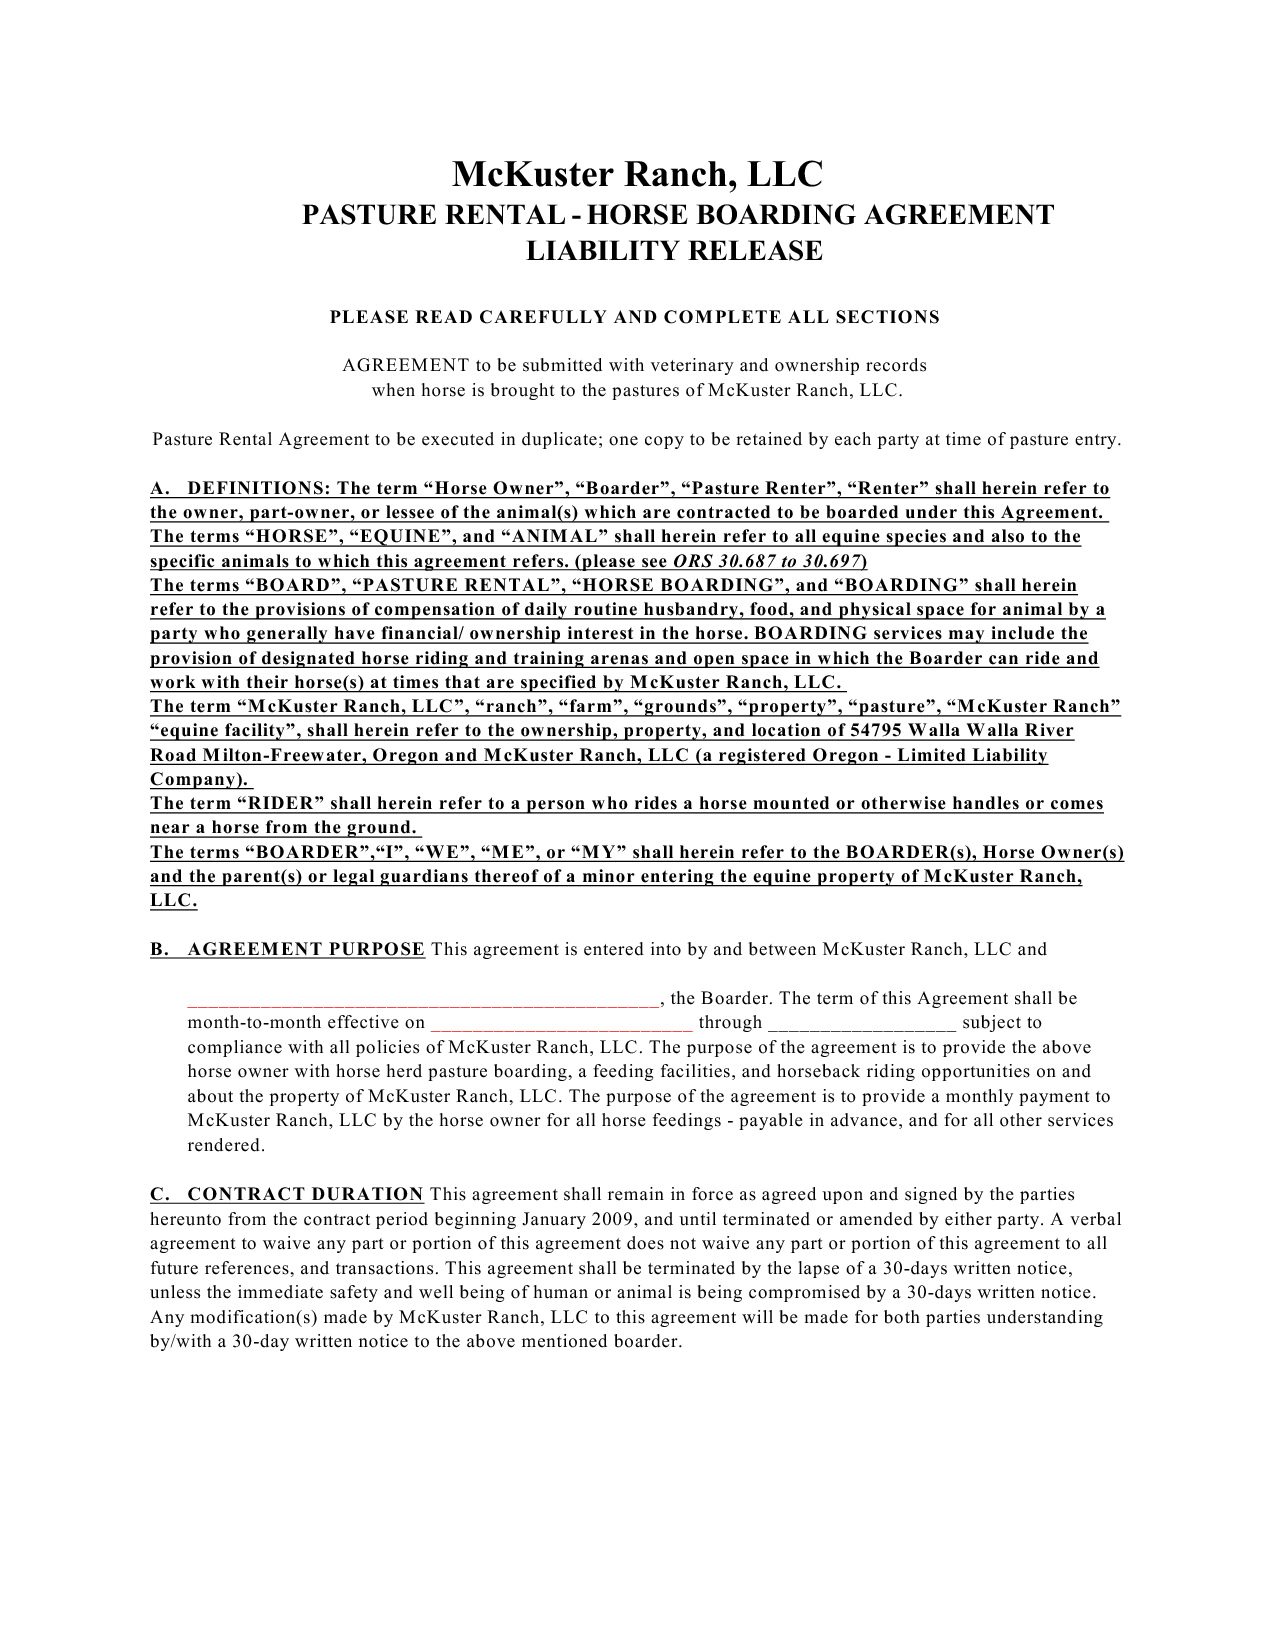 Kansas Pasture Lease Form